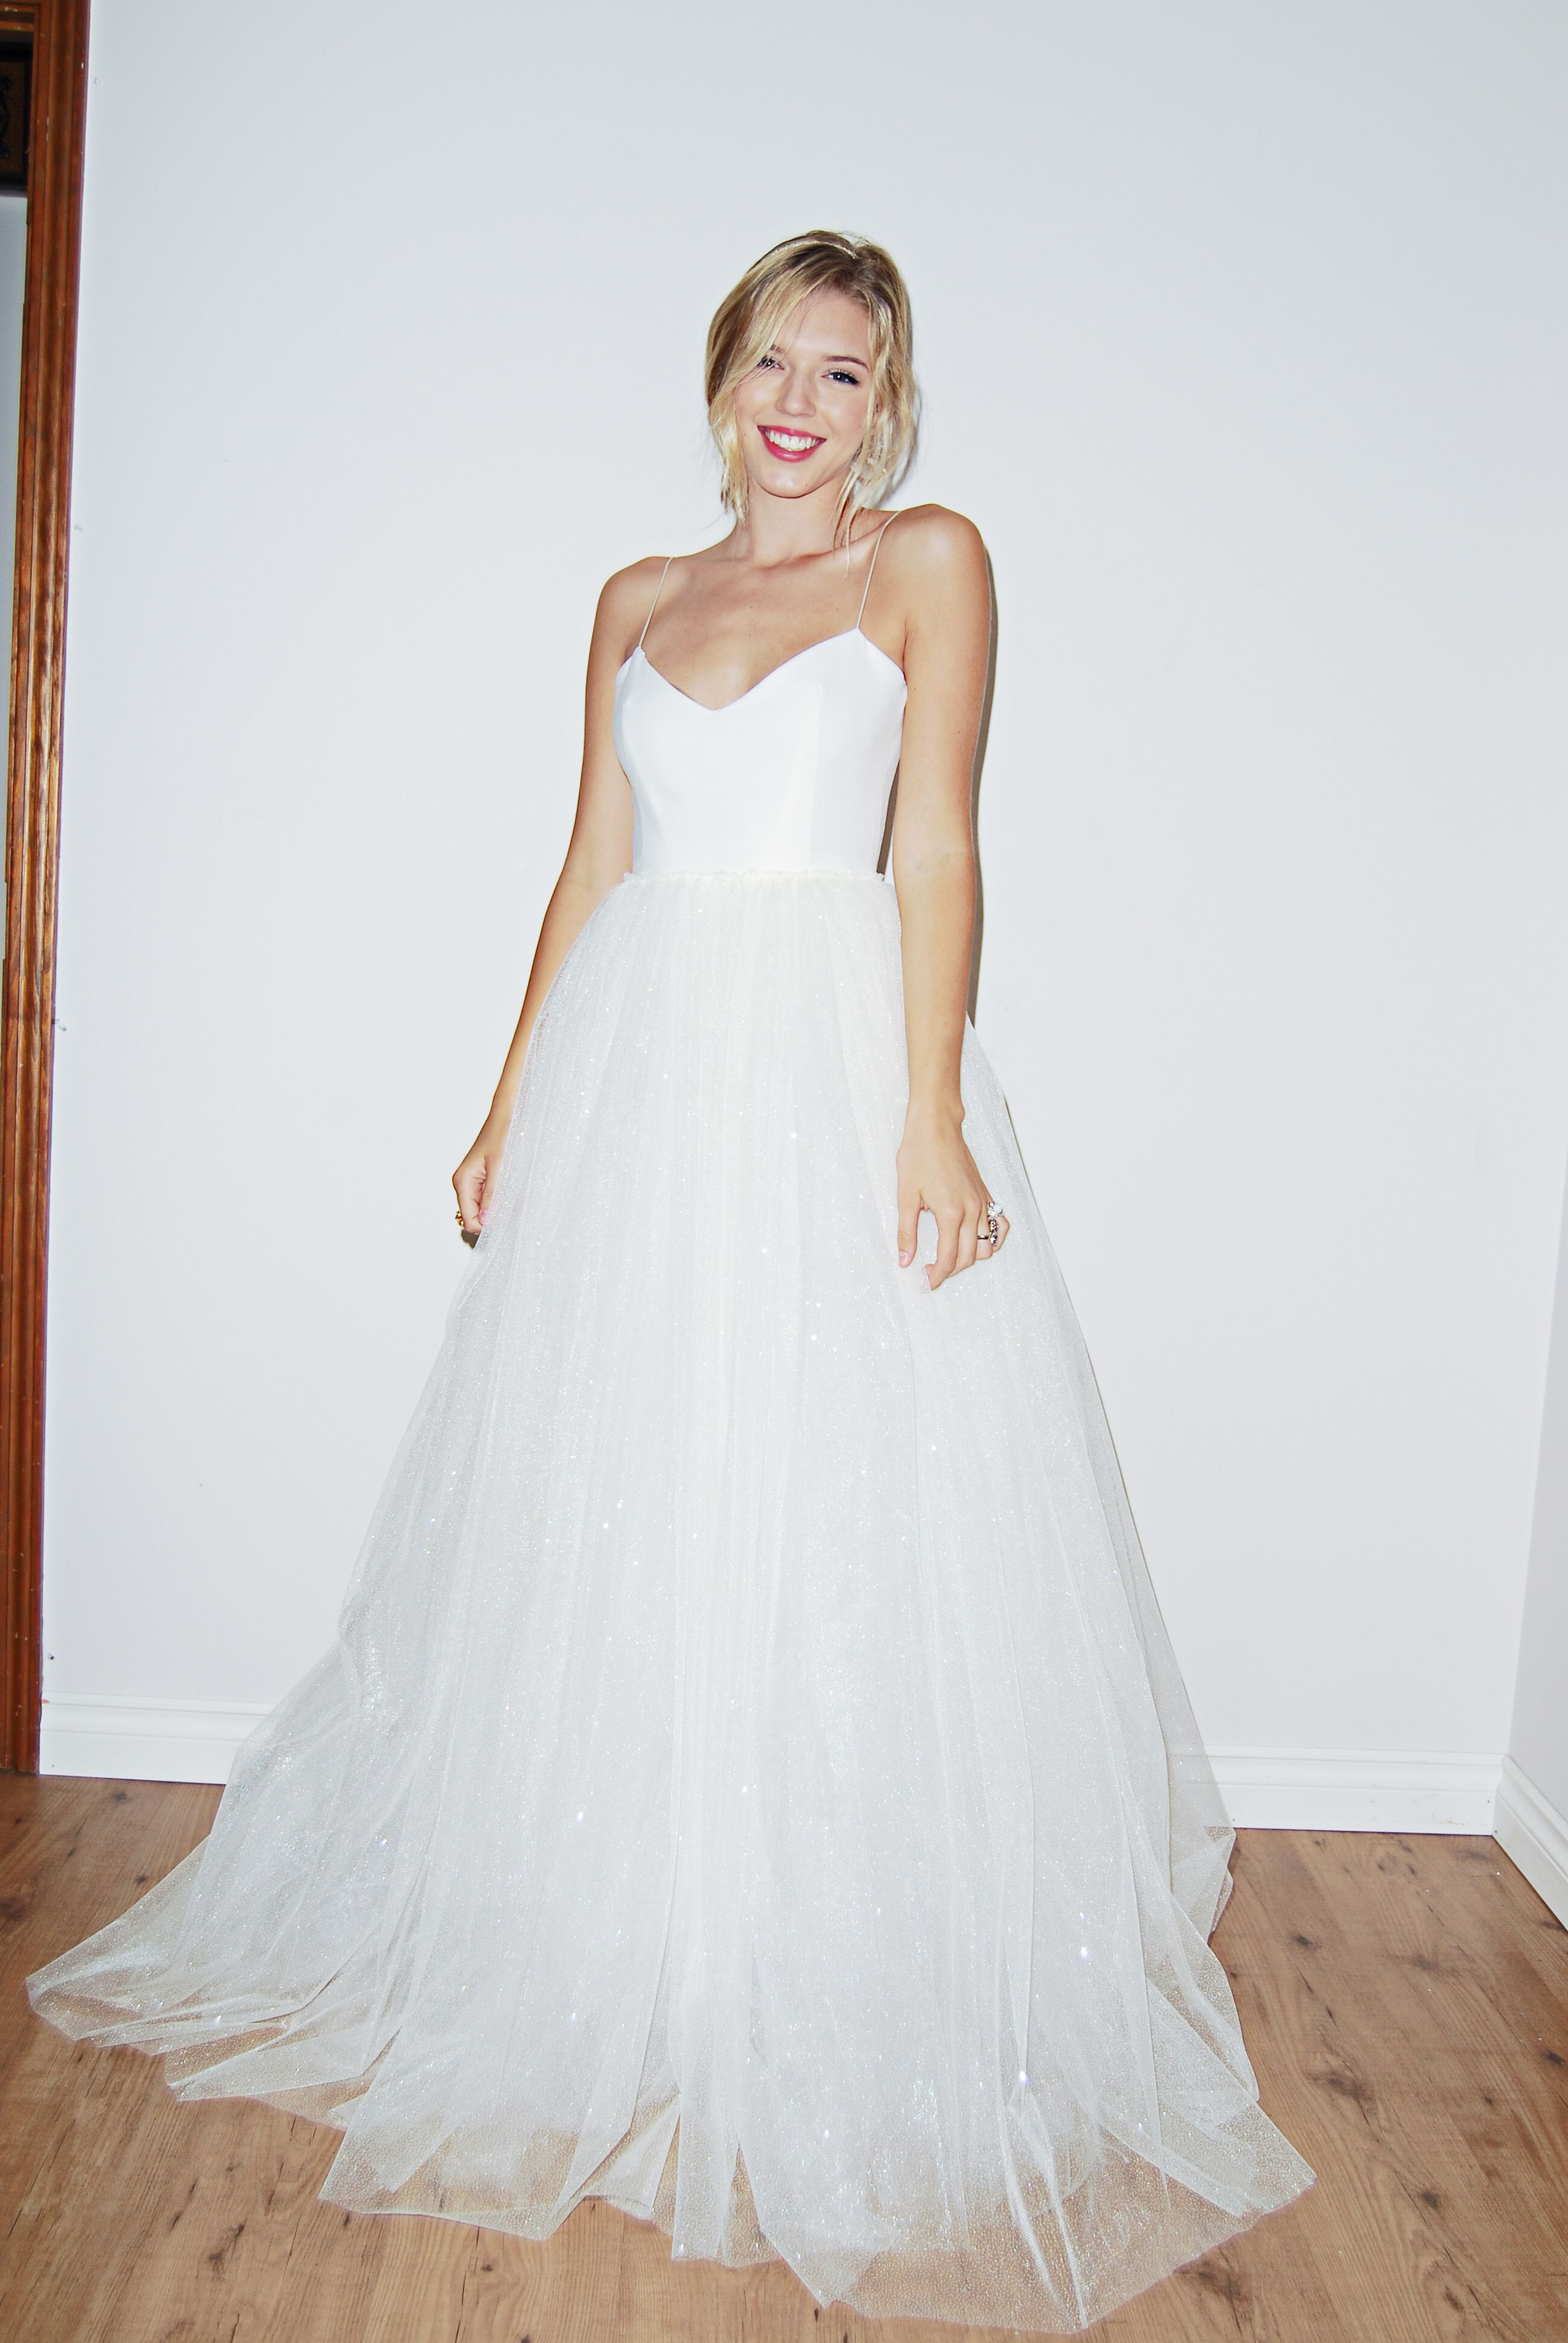 A Dallas Fort Worth Bridal Shop With The Best Selection Of Wedding Dresses And Accessories